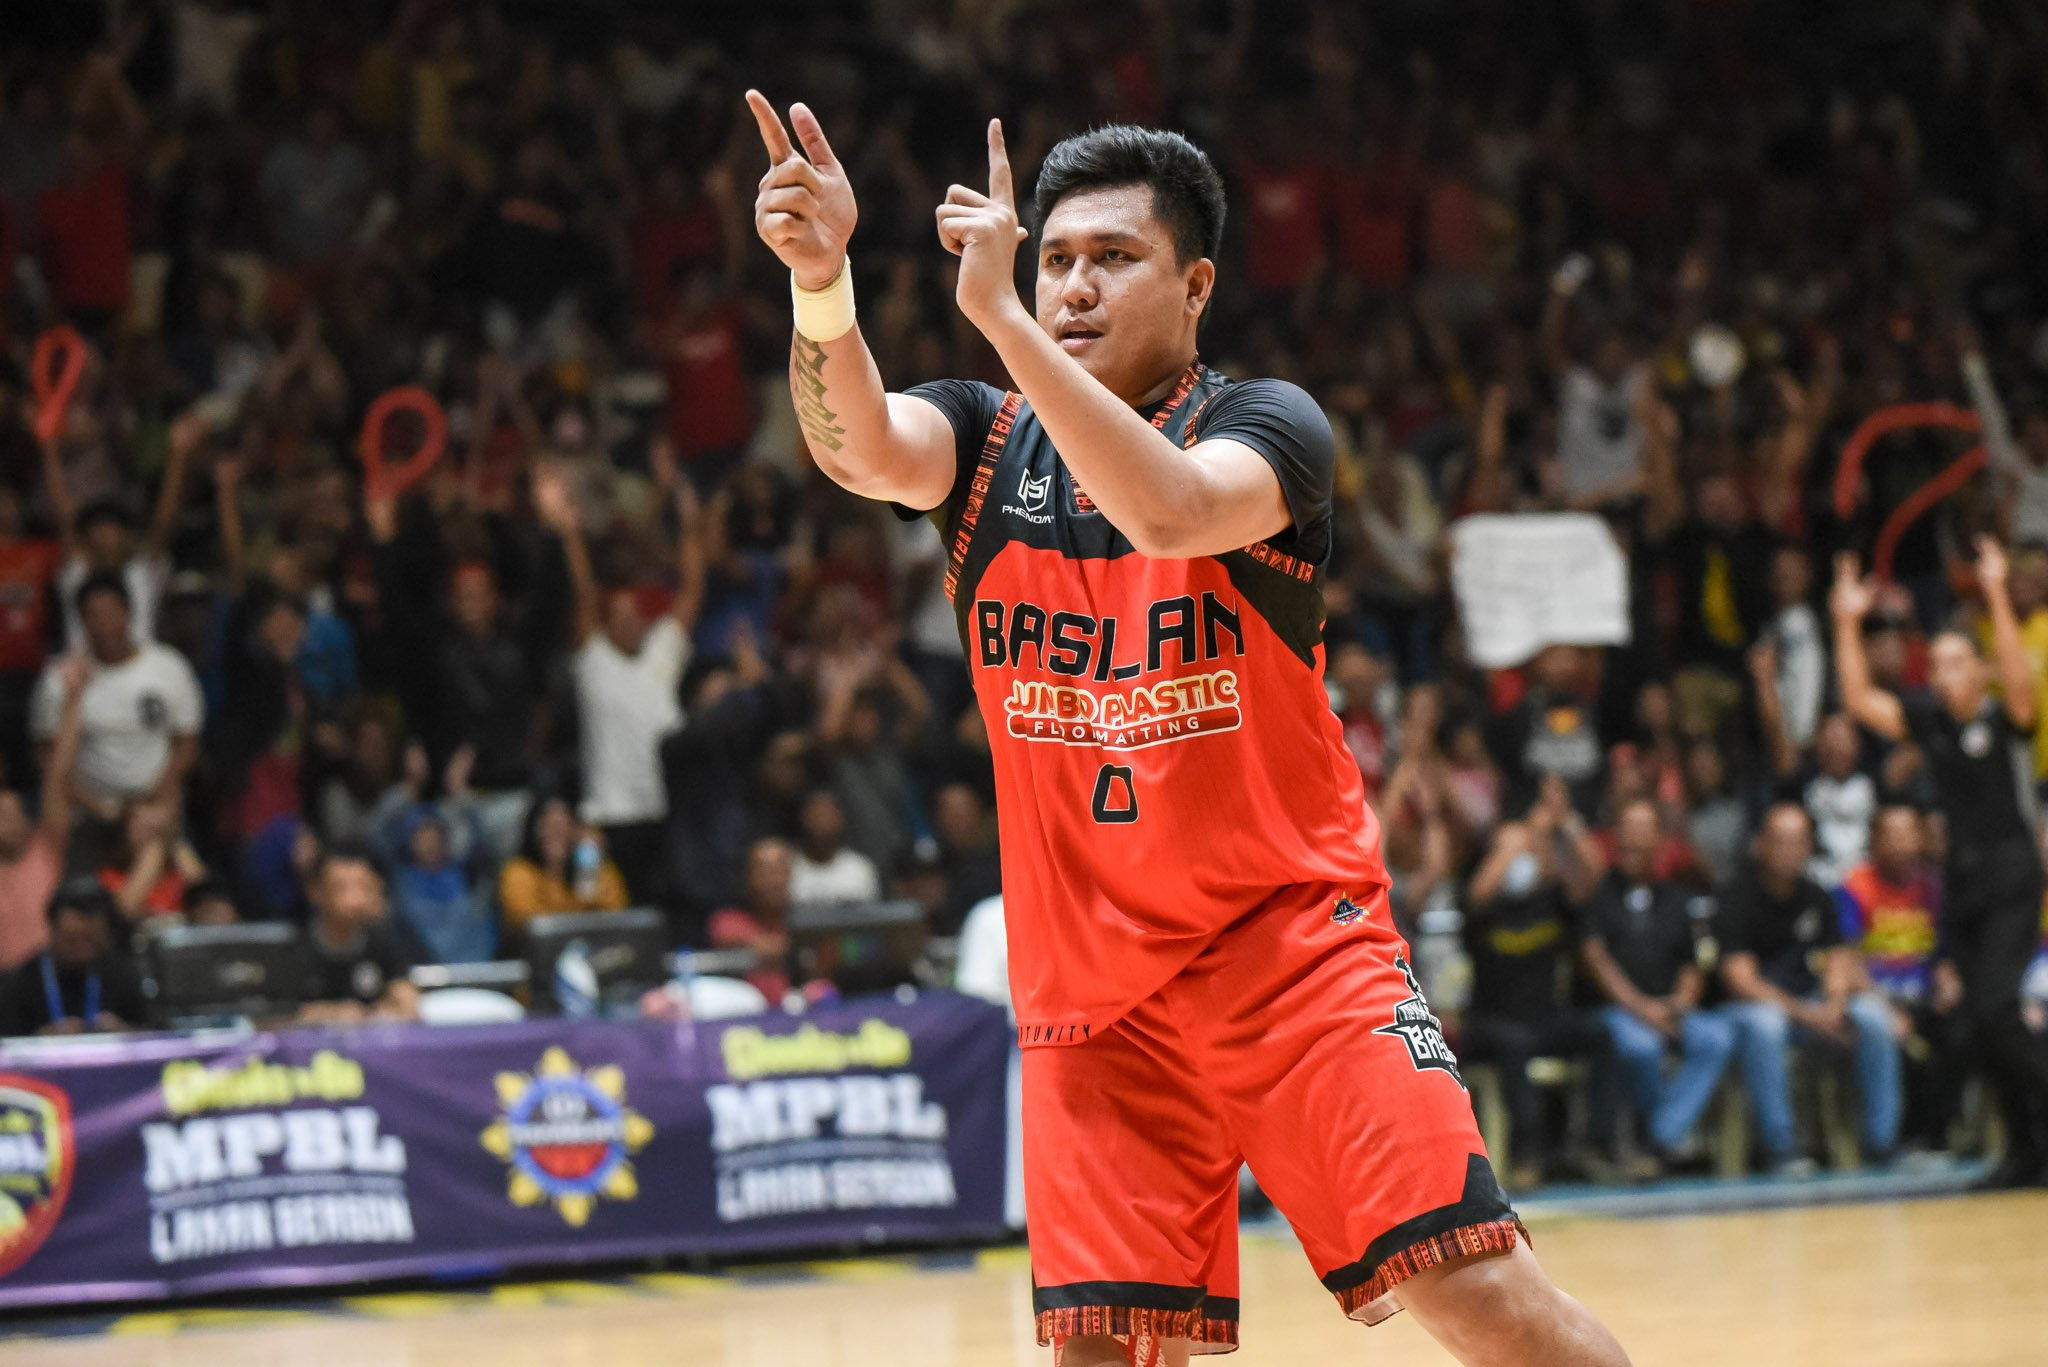 Tiebreaker Times Jay Collado laments not being able to close out Davao Occi in Basilan Basketball MPBL News  Jessie Collado Basilan Steel 2019-20 MPBL Lakan Cup